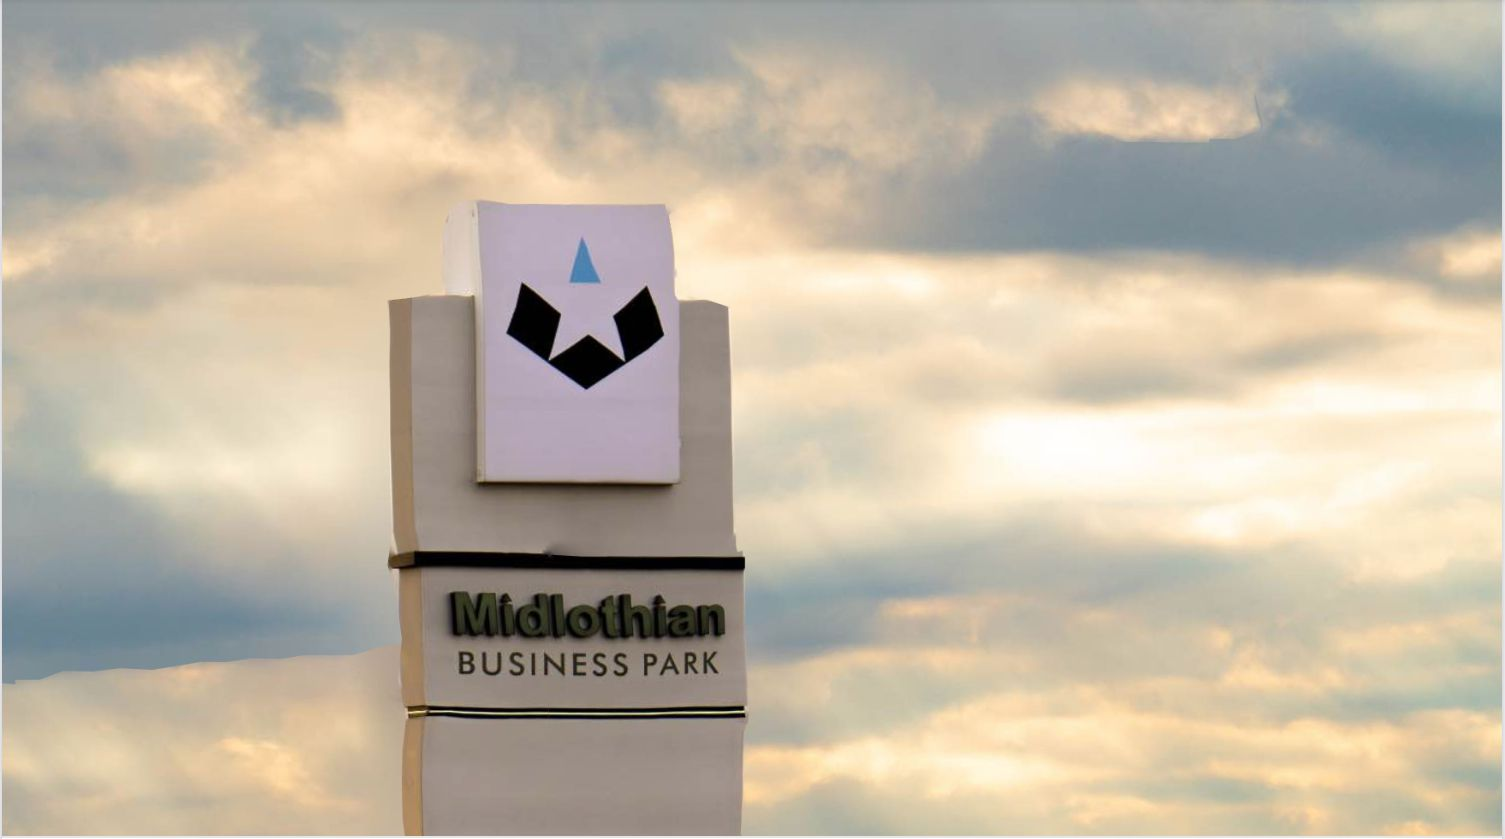 The Midlothian Business Park is on U.S. Highway 67.